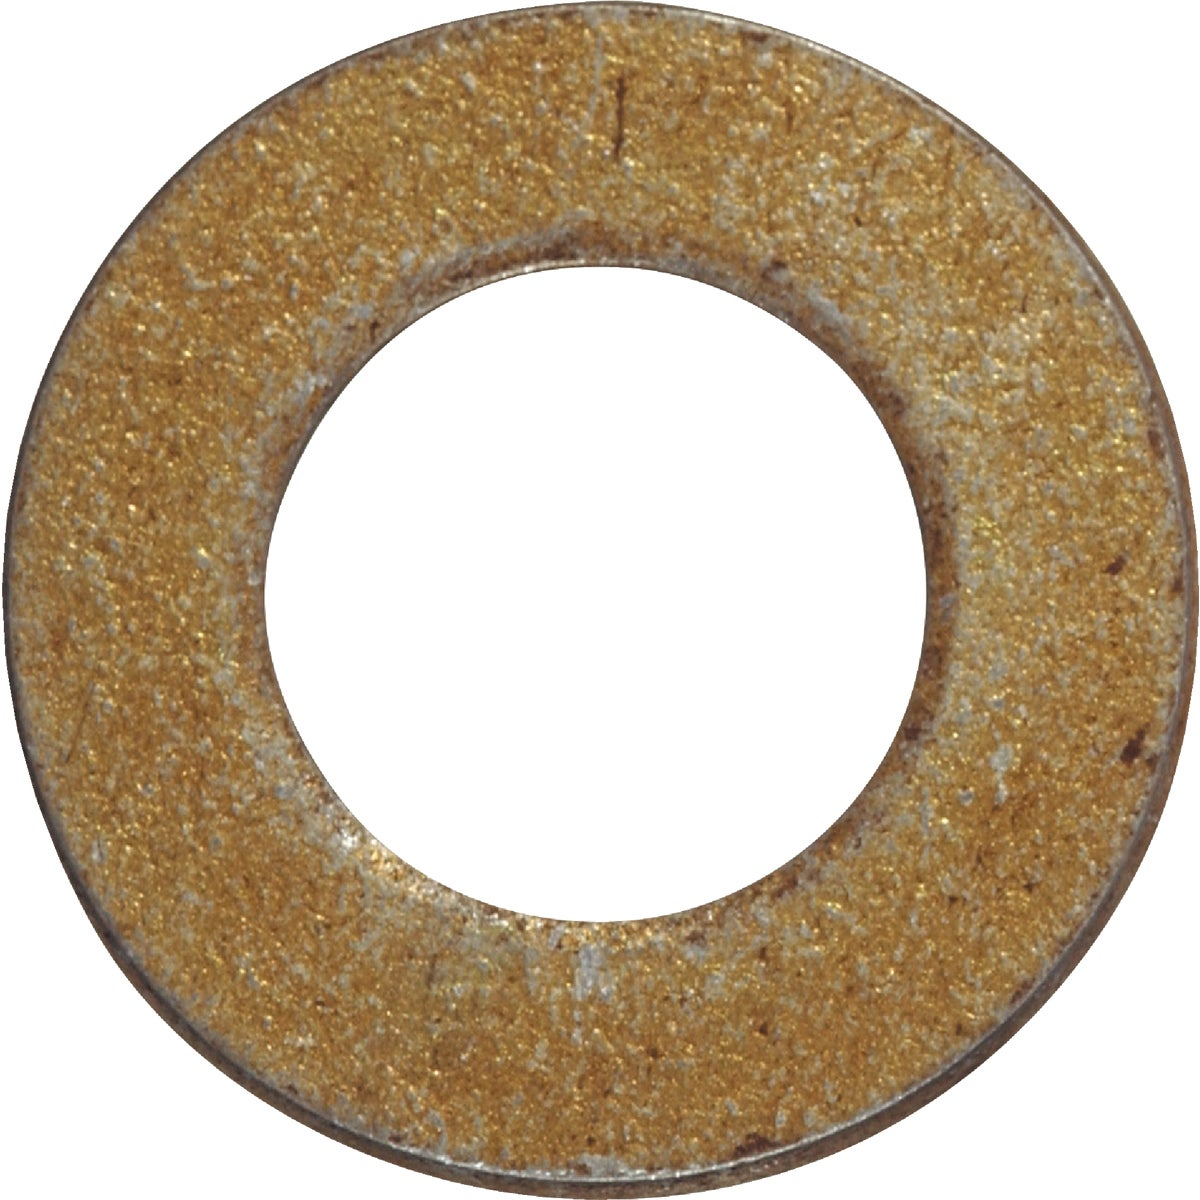 50 7/16 HRDNDFLT WASHER - 280304 by Hillman Fastener